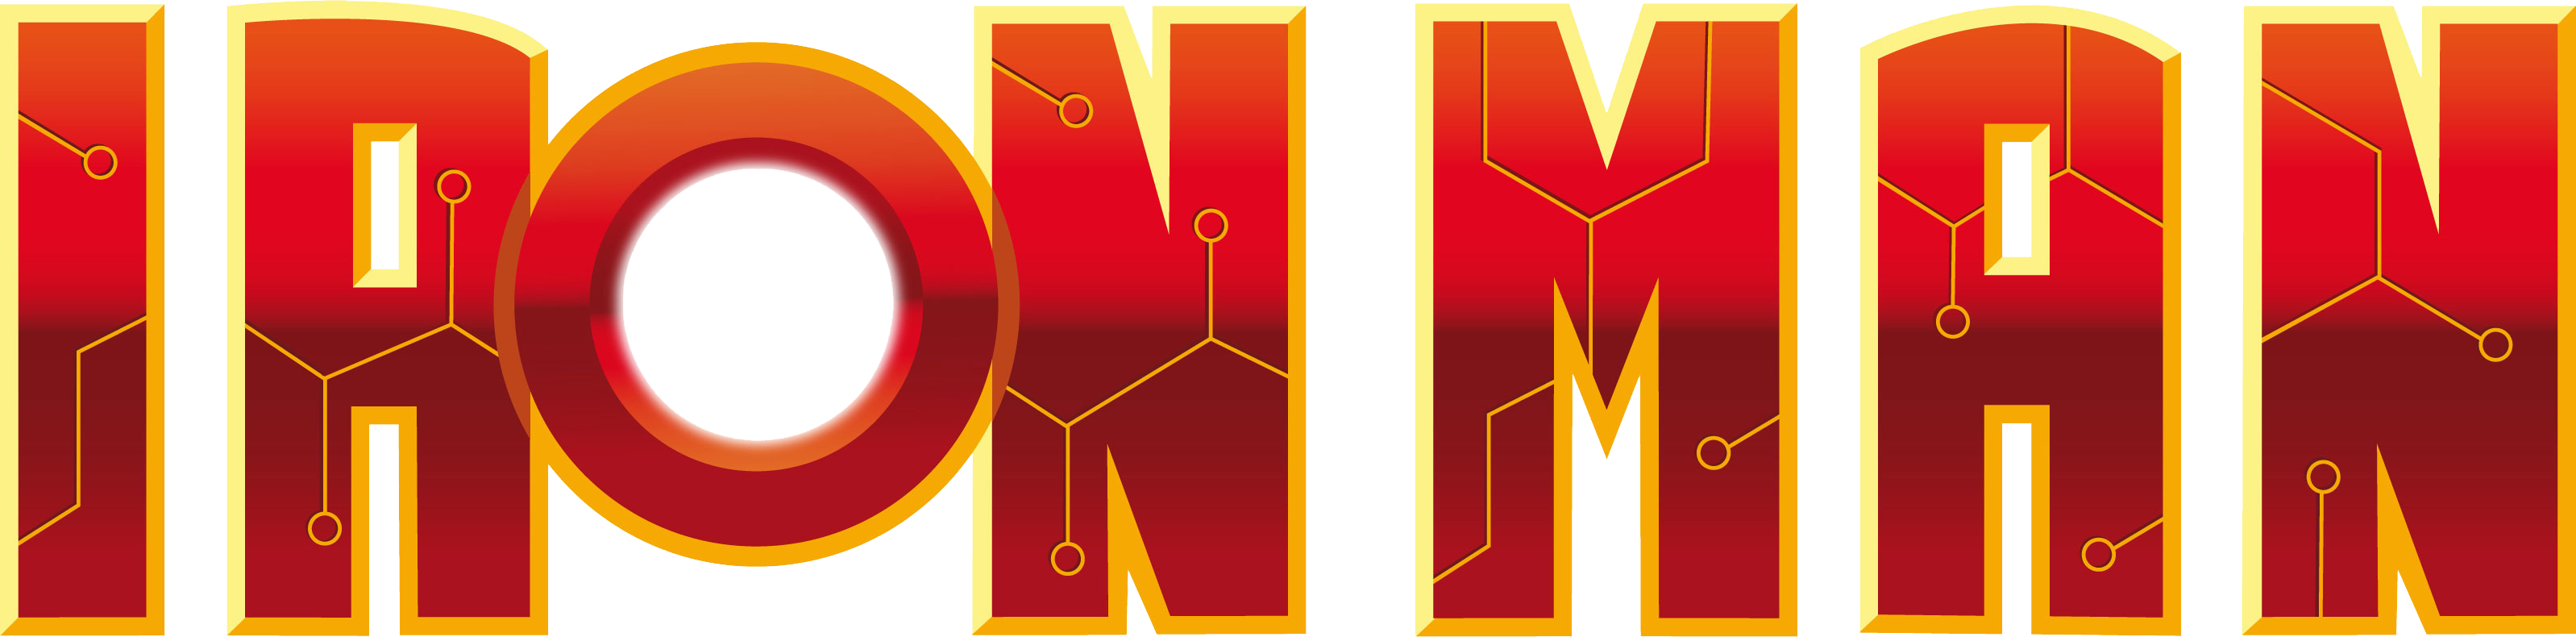 Ironman png images free. Logo clipart avengers